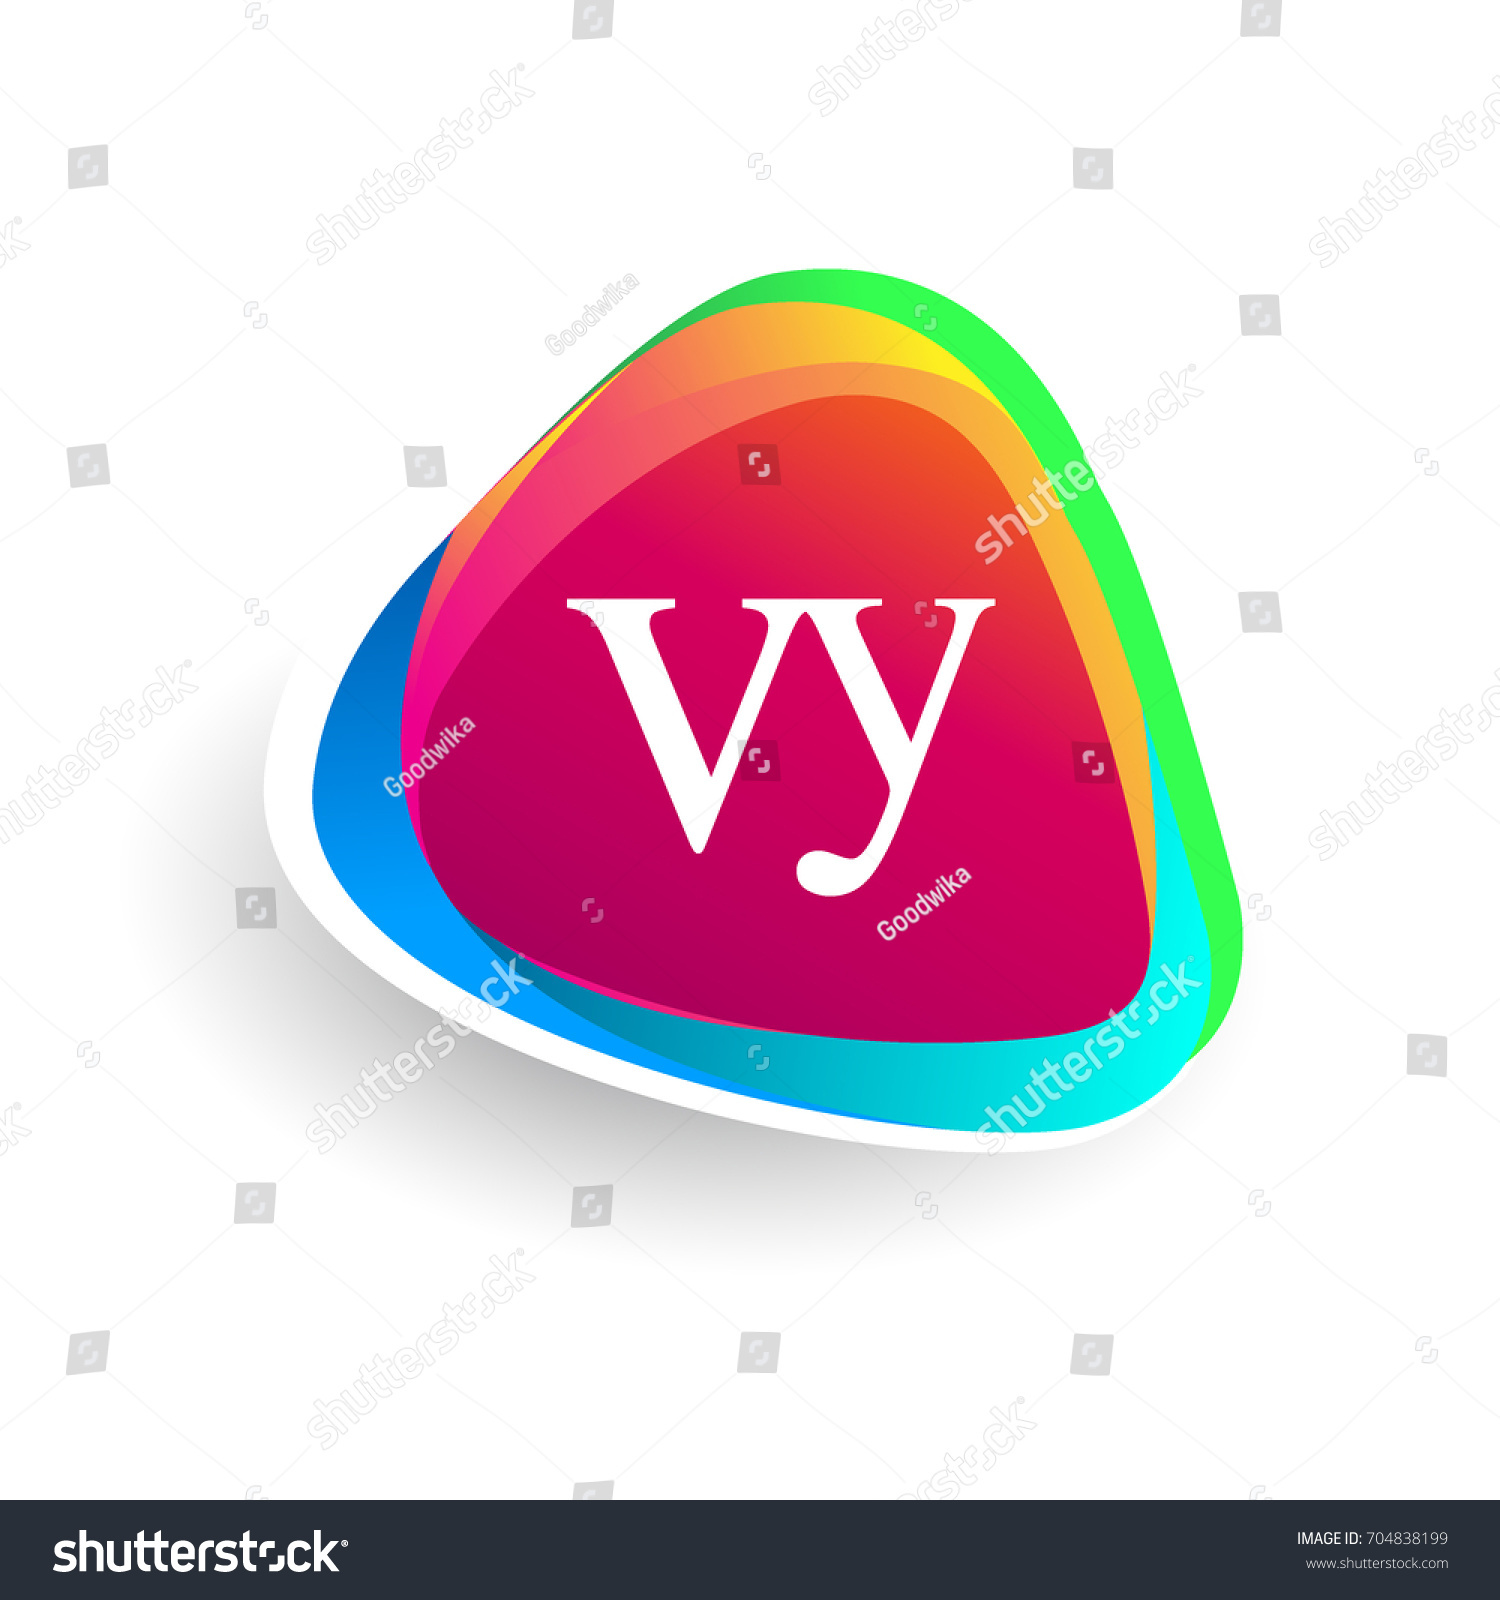 Letter VY Logo Triangle Shape Colorful Stock Vector (Royalty Free ...